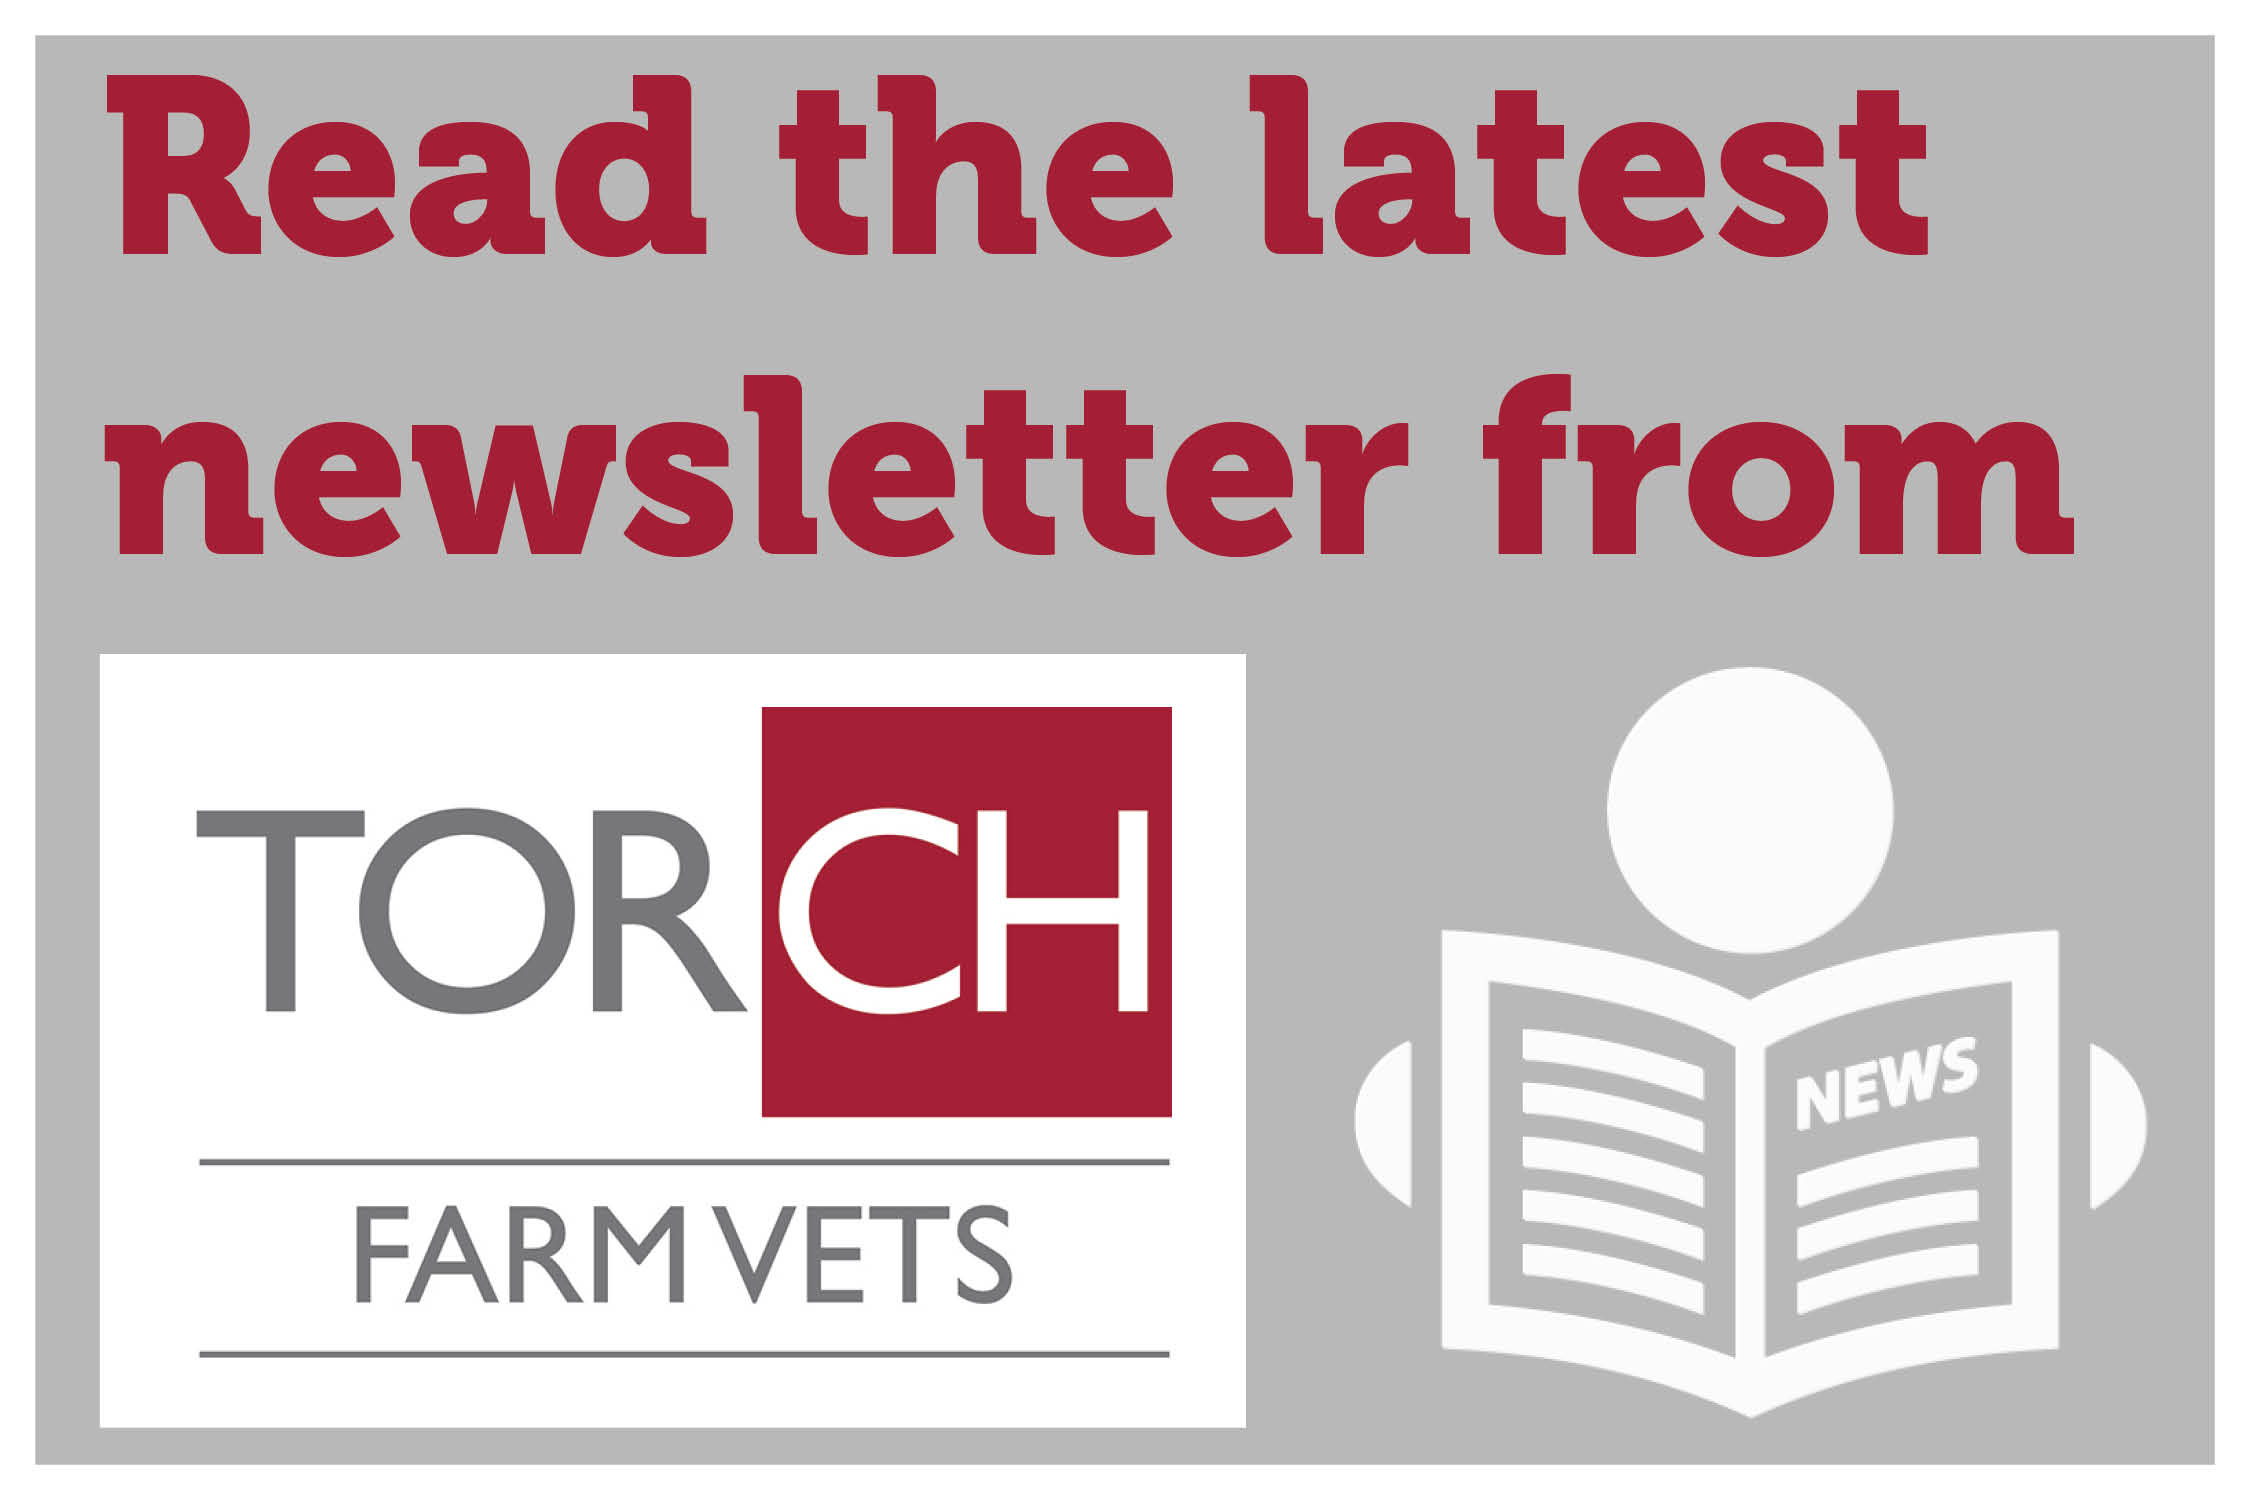 Torch Farm Vets newsletter – July 2019